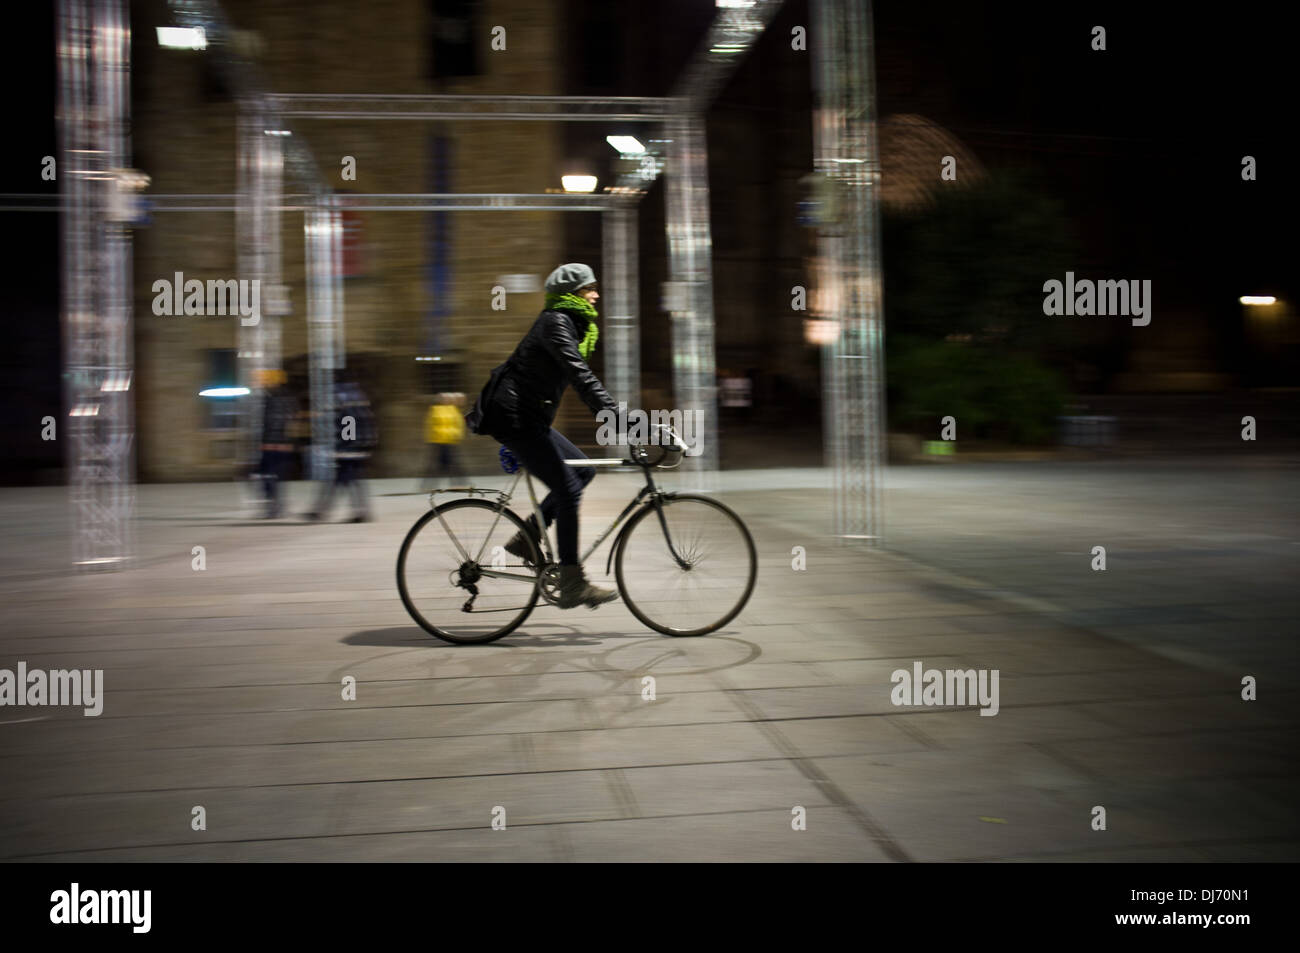 A woman cycling in Barcelona. - Stock Image